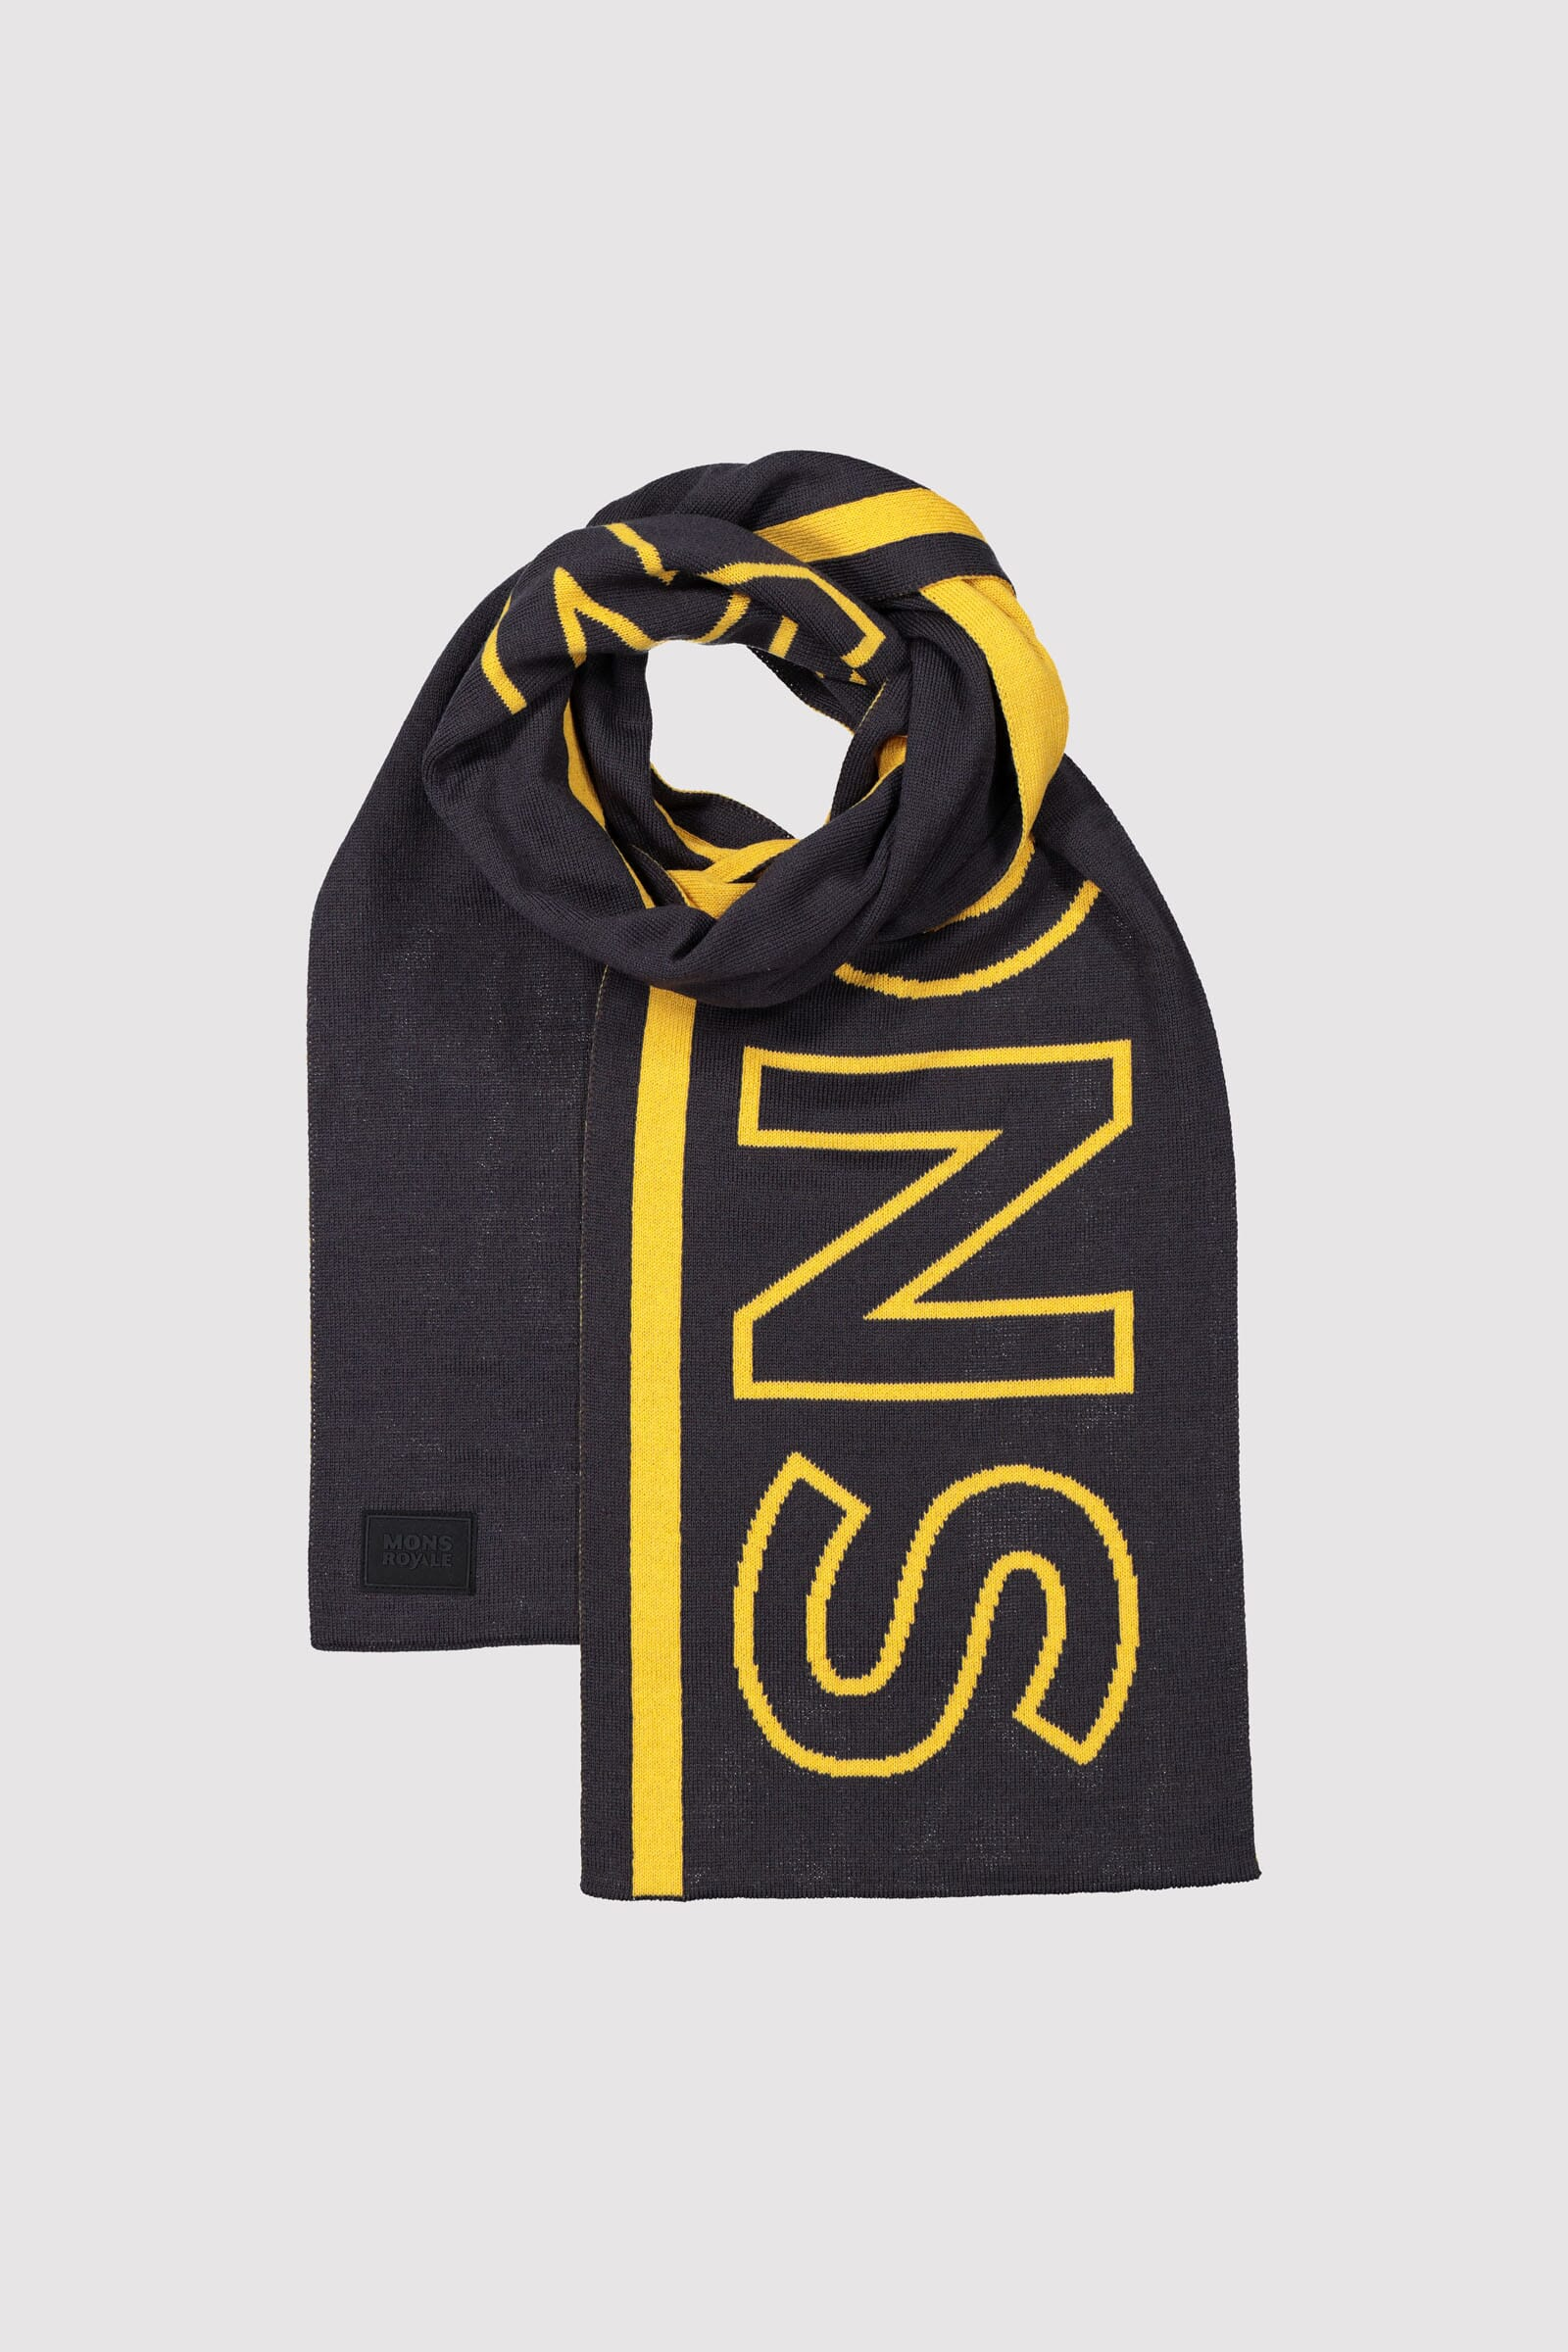 Team Scarf - 9 Iron / Gold